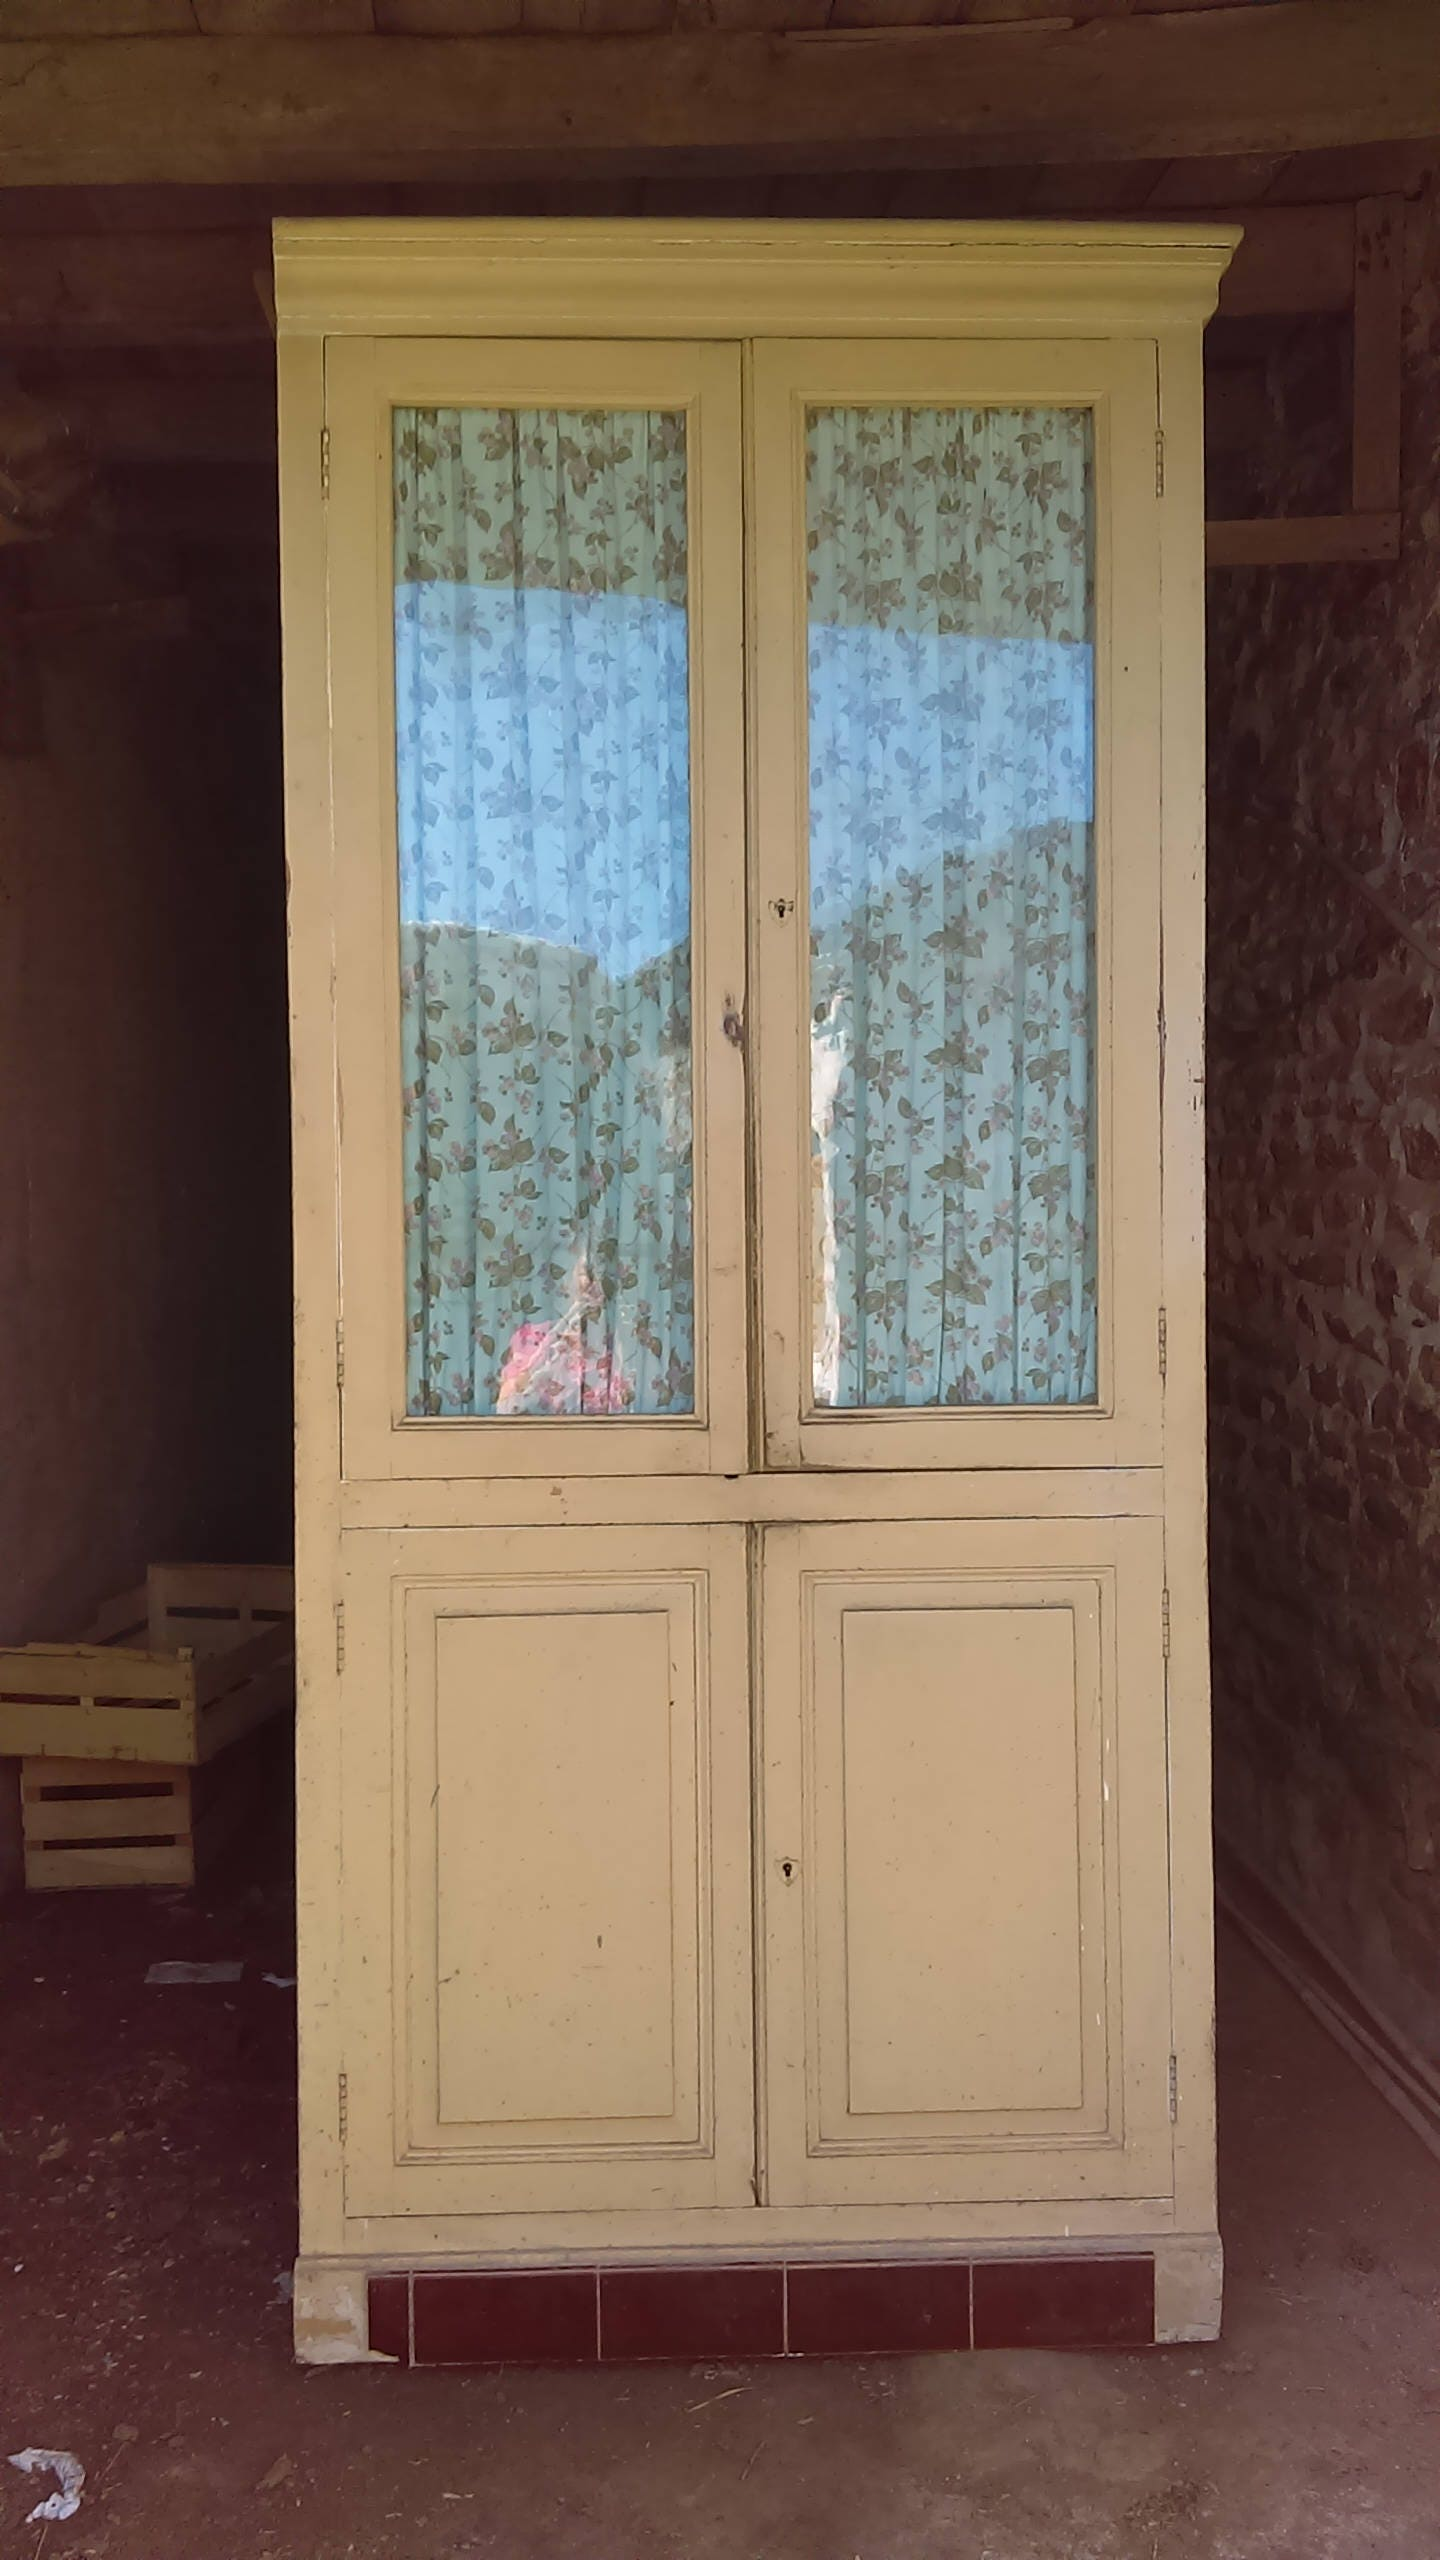 Glazed Kitchen Cupboard Doors Antique Old Painted Pine French Dresser Kitchen Cupboard With